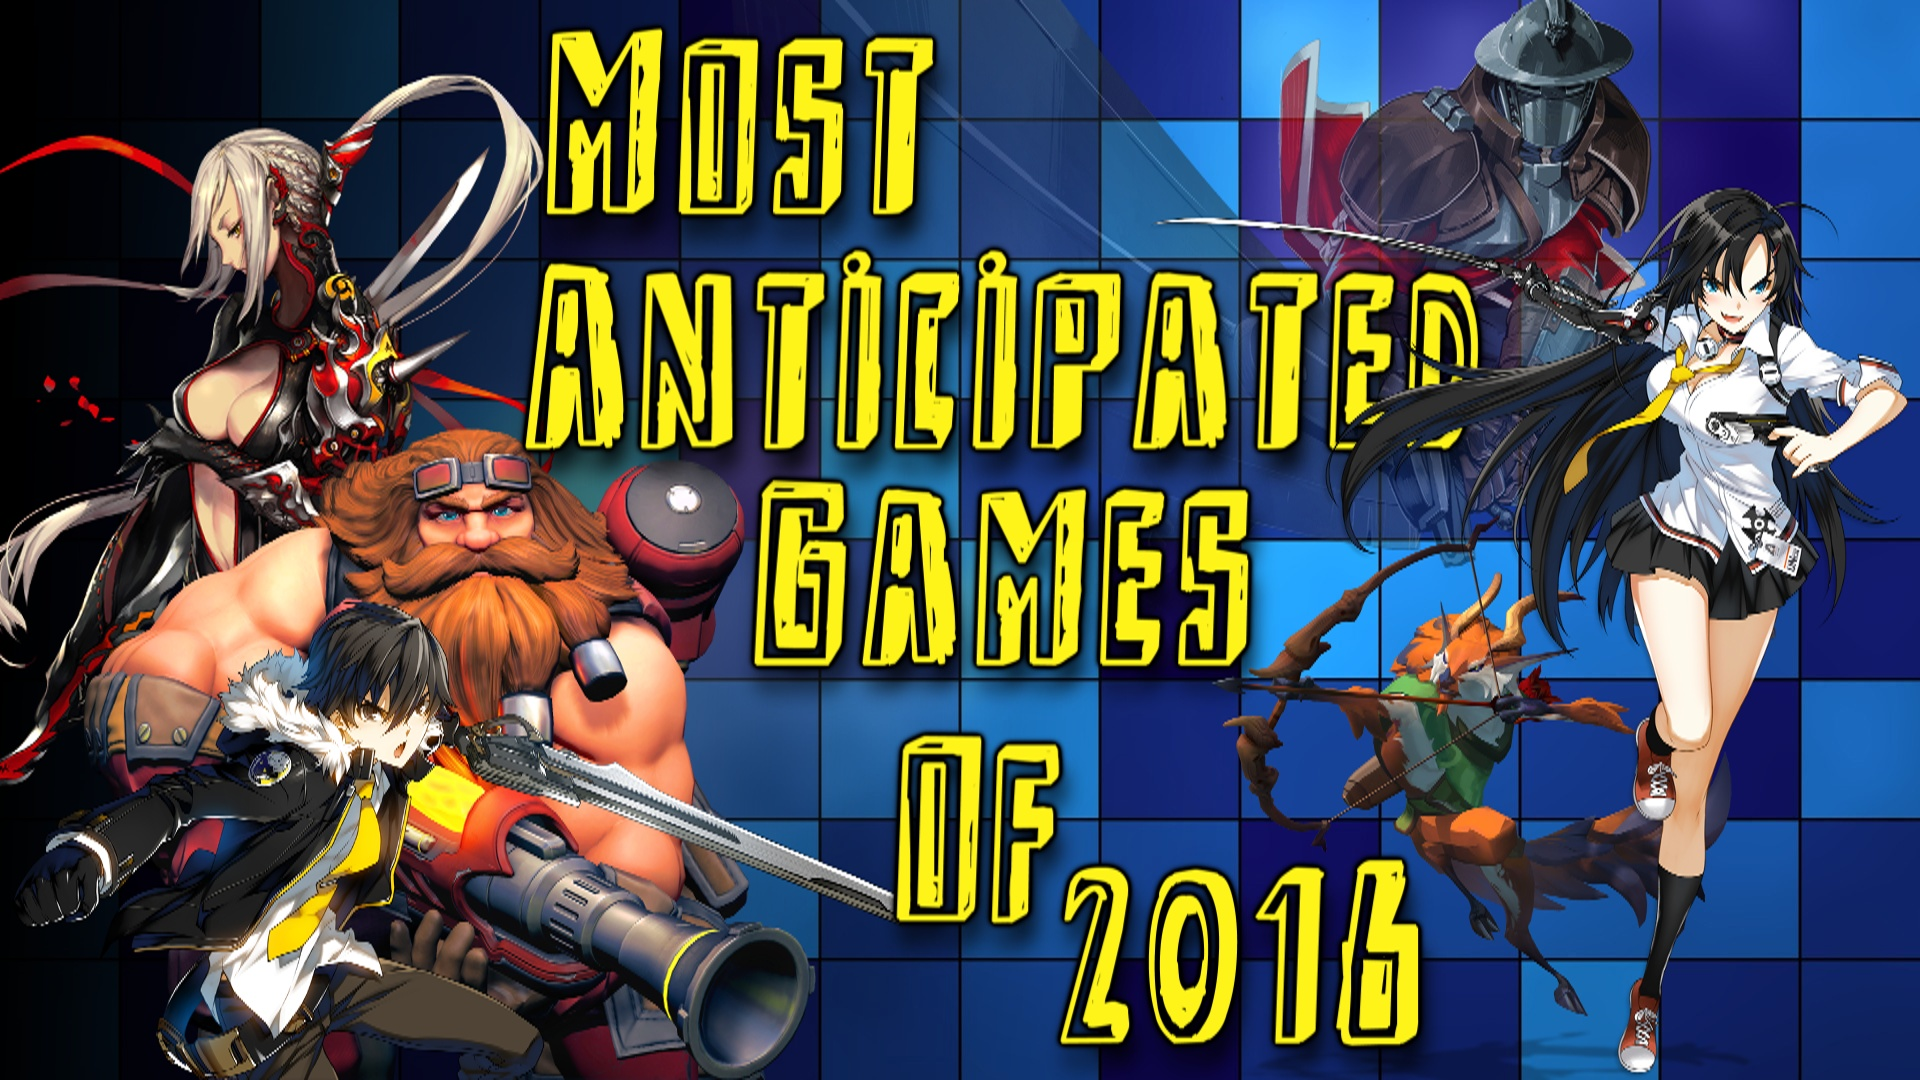 Top 15 Most Anticipated F2P Games of 2016